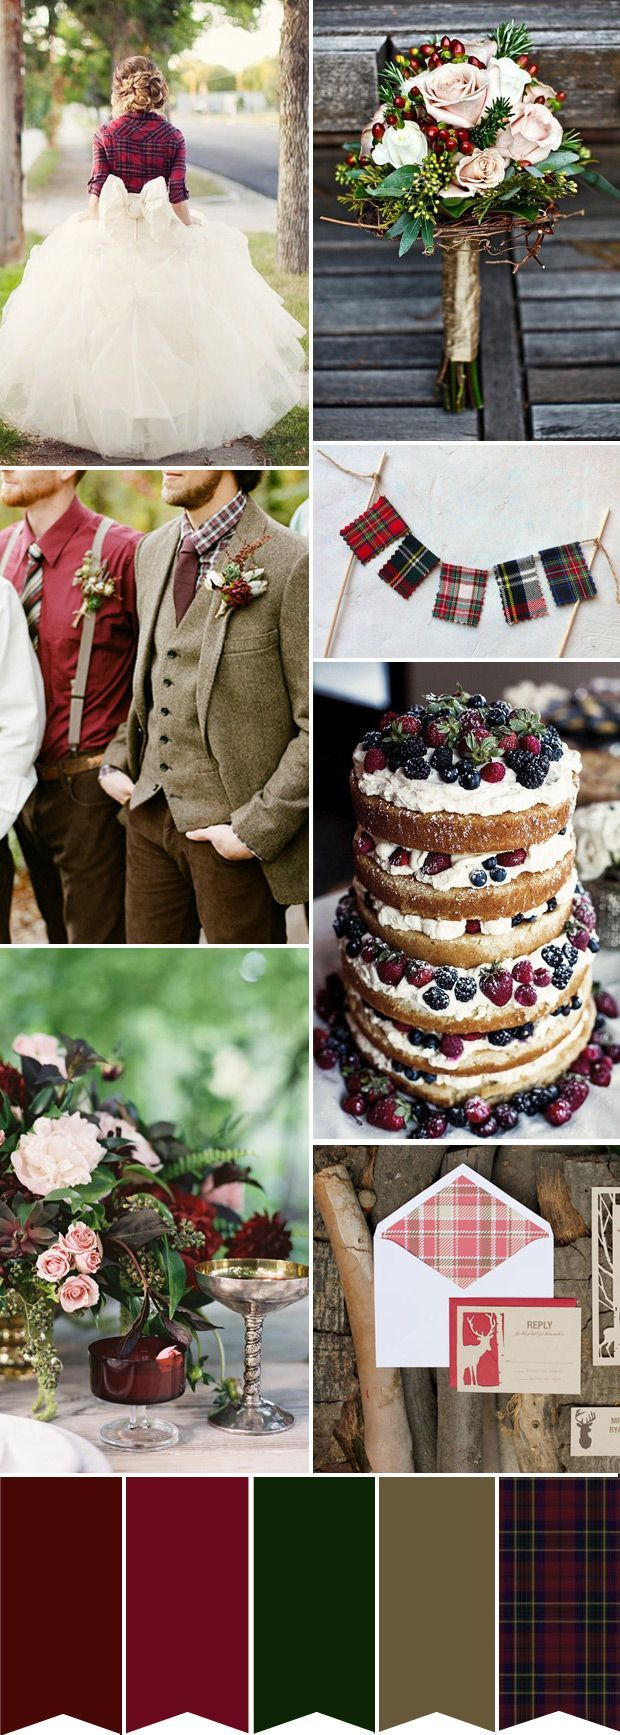 A little bit of Tartan: A Red and Green Winter Wedding Colour Palette | www.onefabday.com